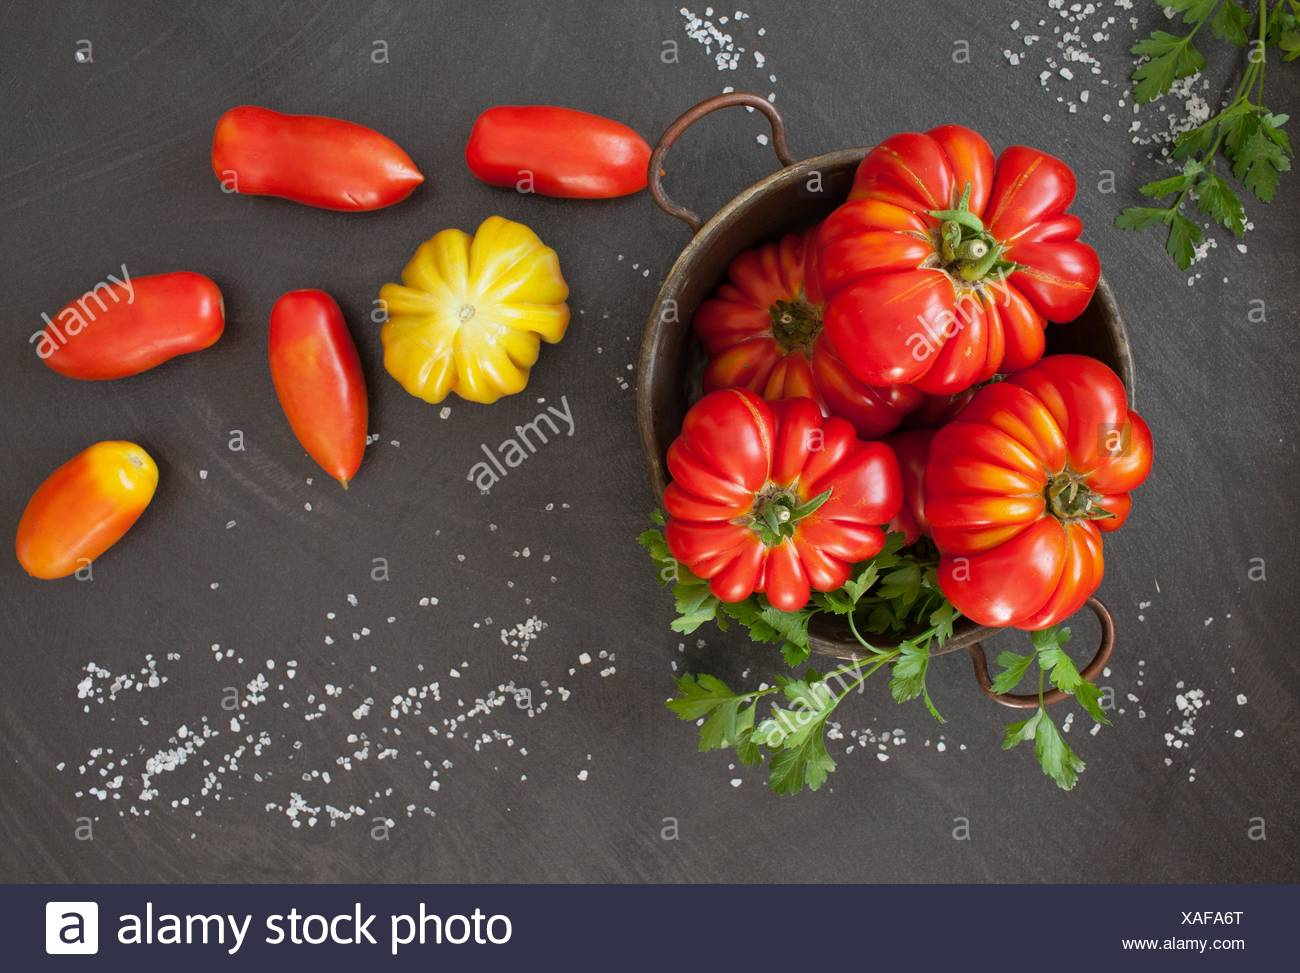 Fresh tomatoes: Heirloom and oblong type. - Stock Image